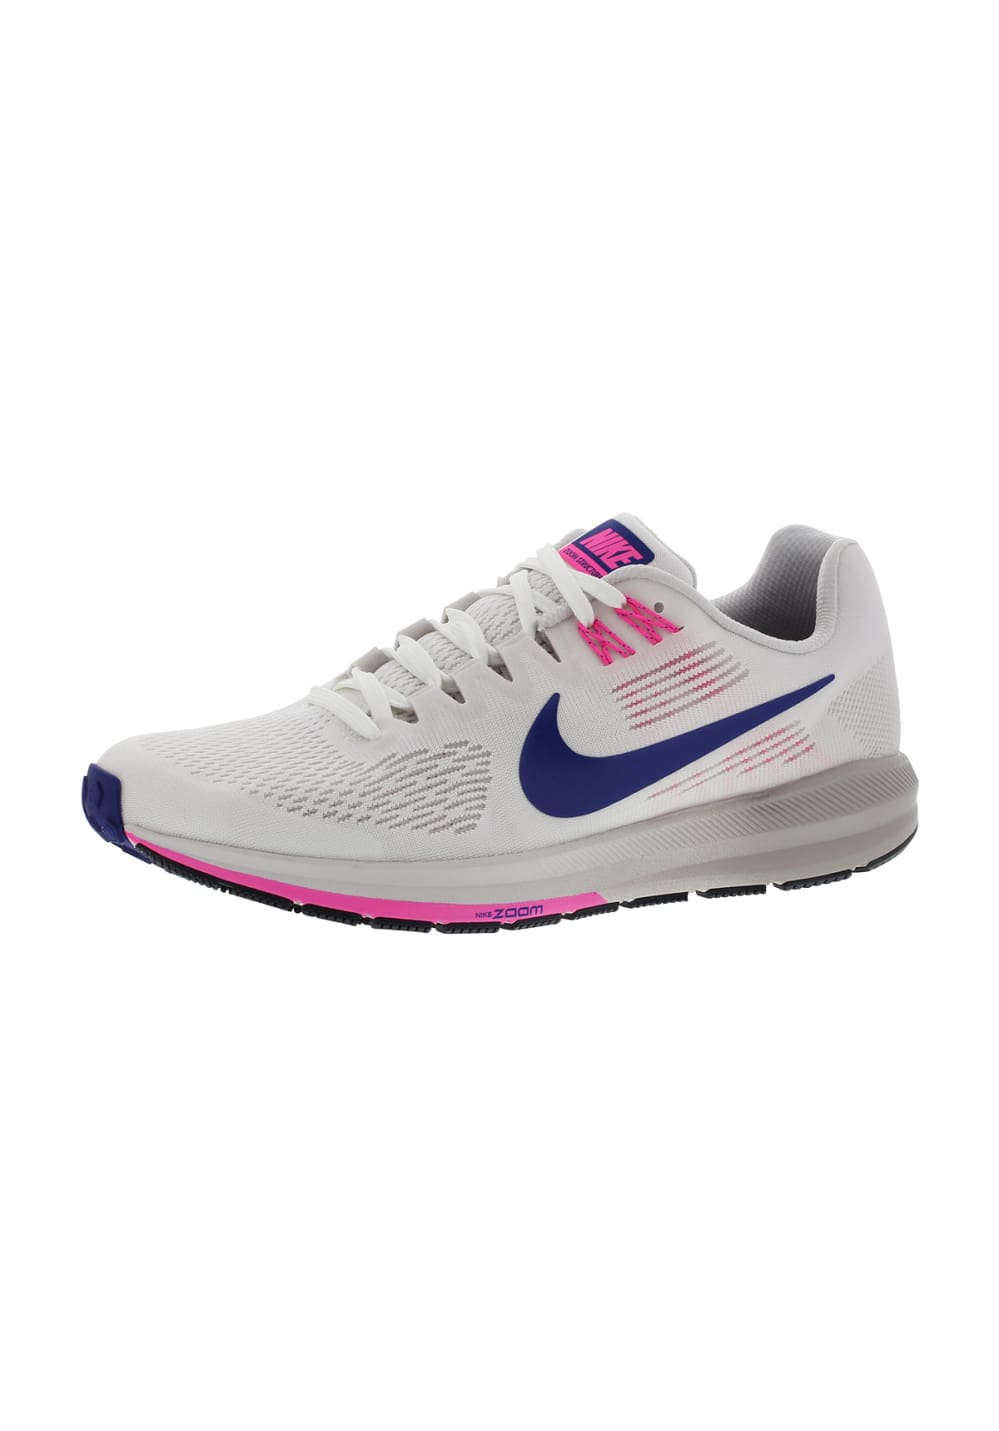 2f2be10affe Next. -60%. Nike. Air Zoom Structure 21 - Running shoes for Women